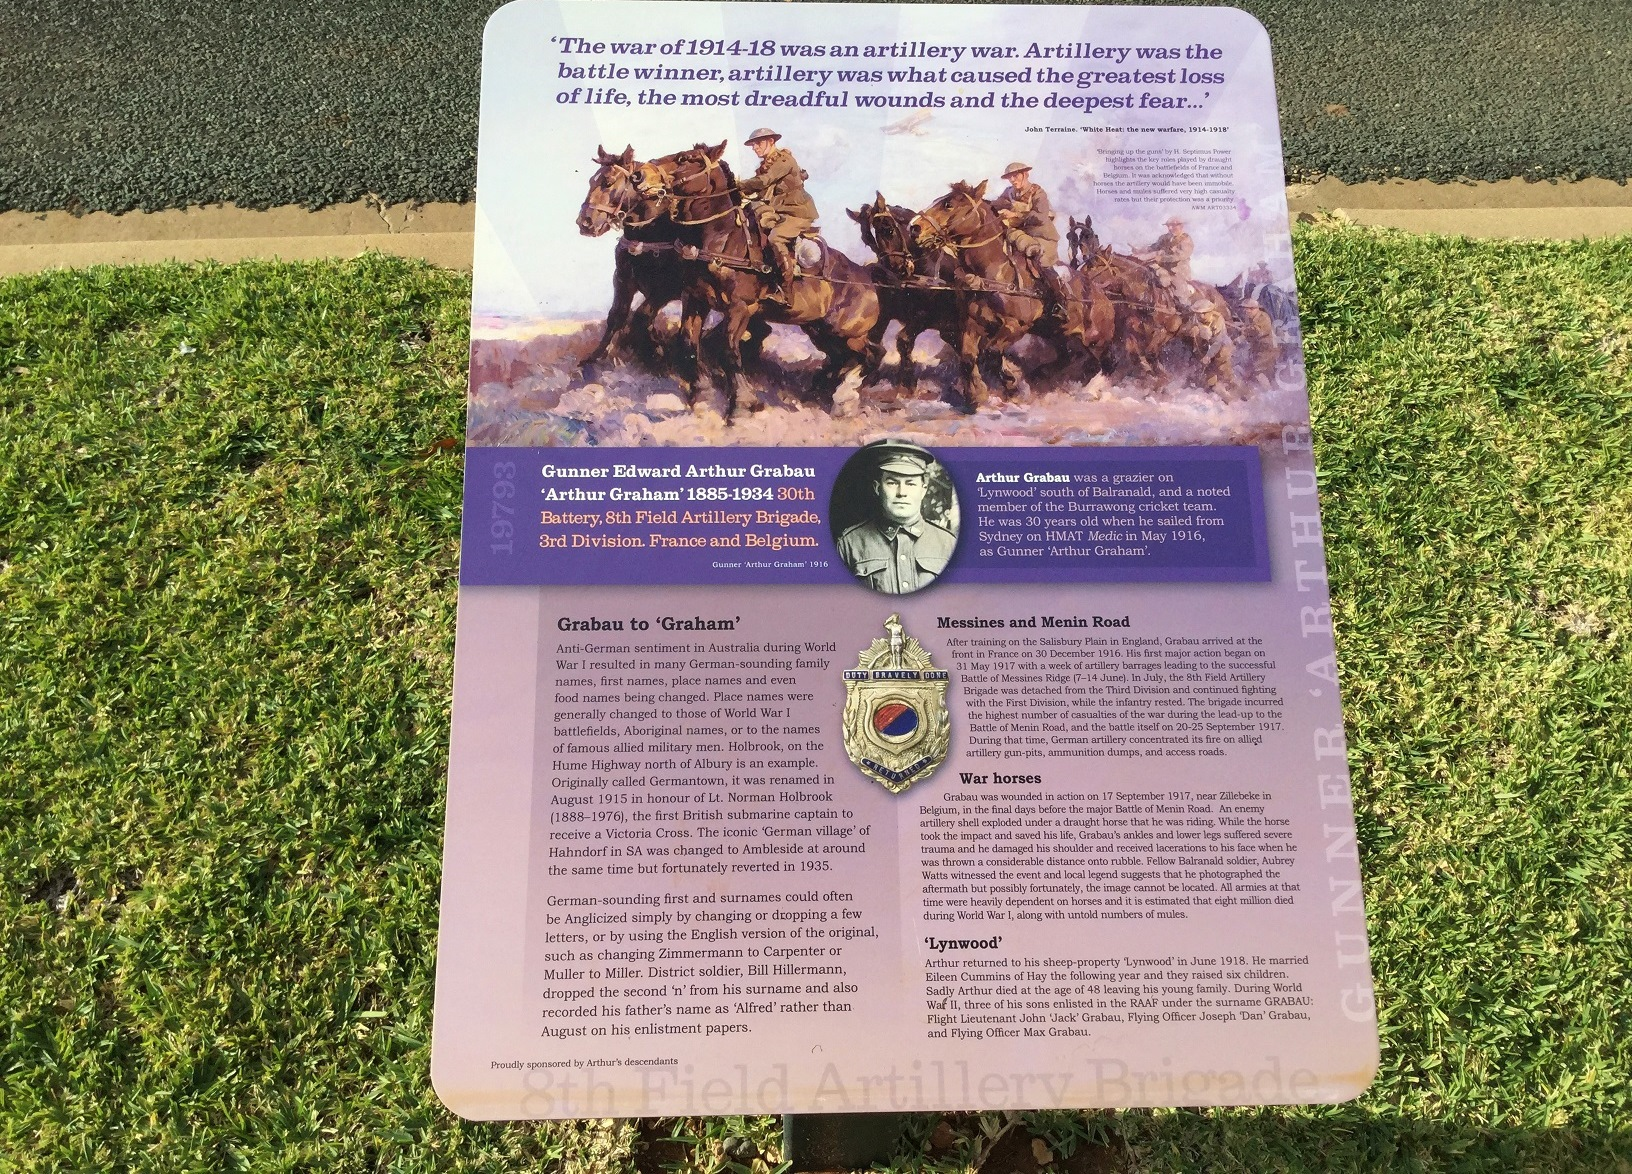 One of the beautiful plaques of the Military Commemorative Trail in Balranald